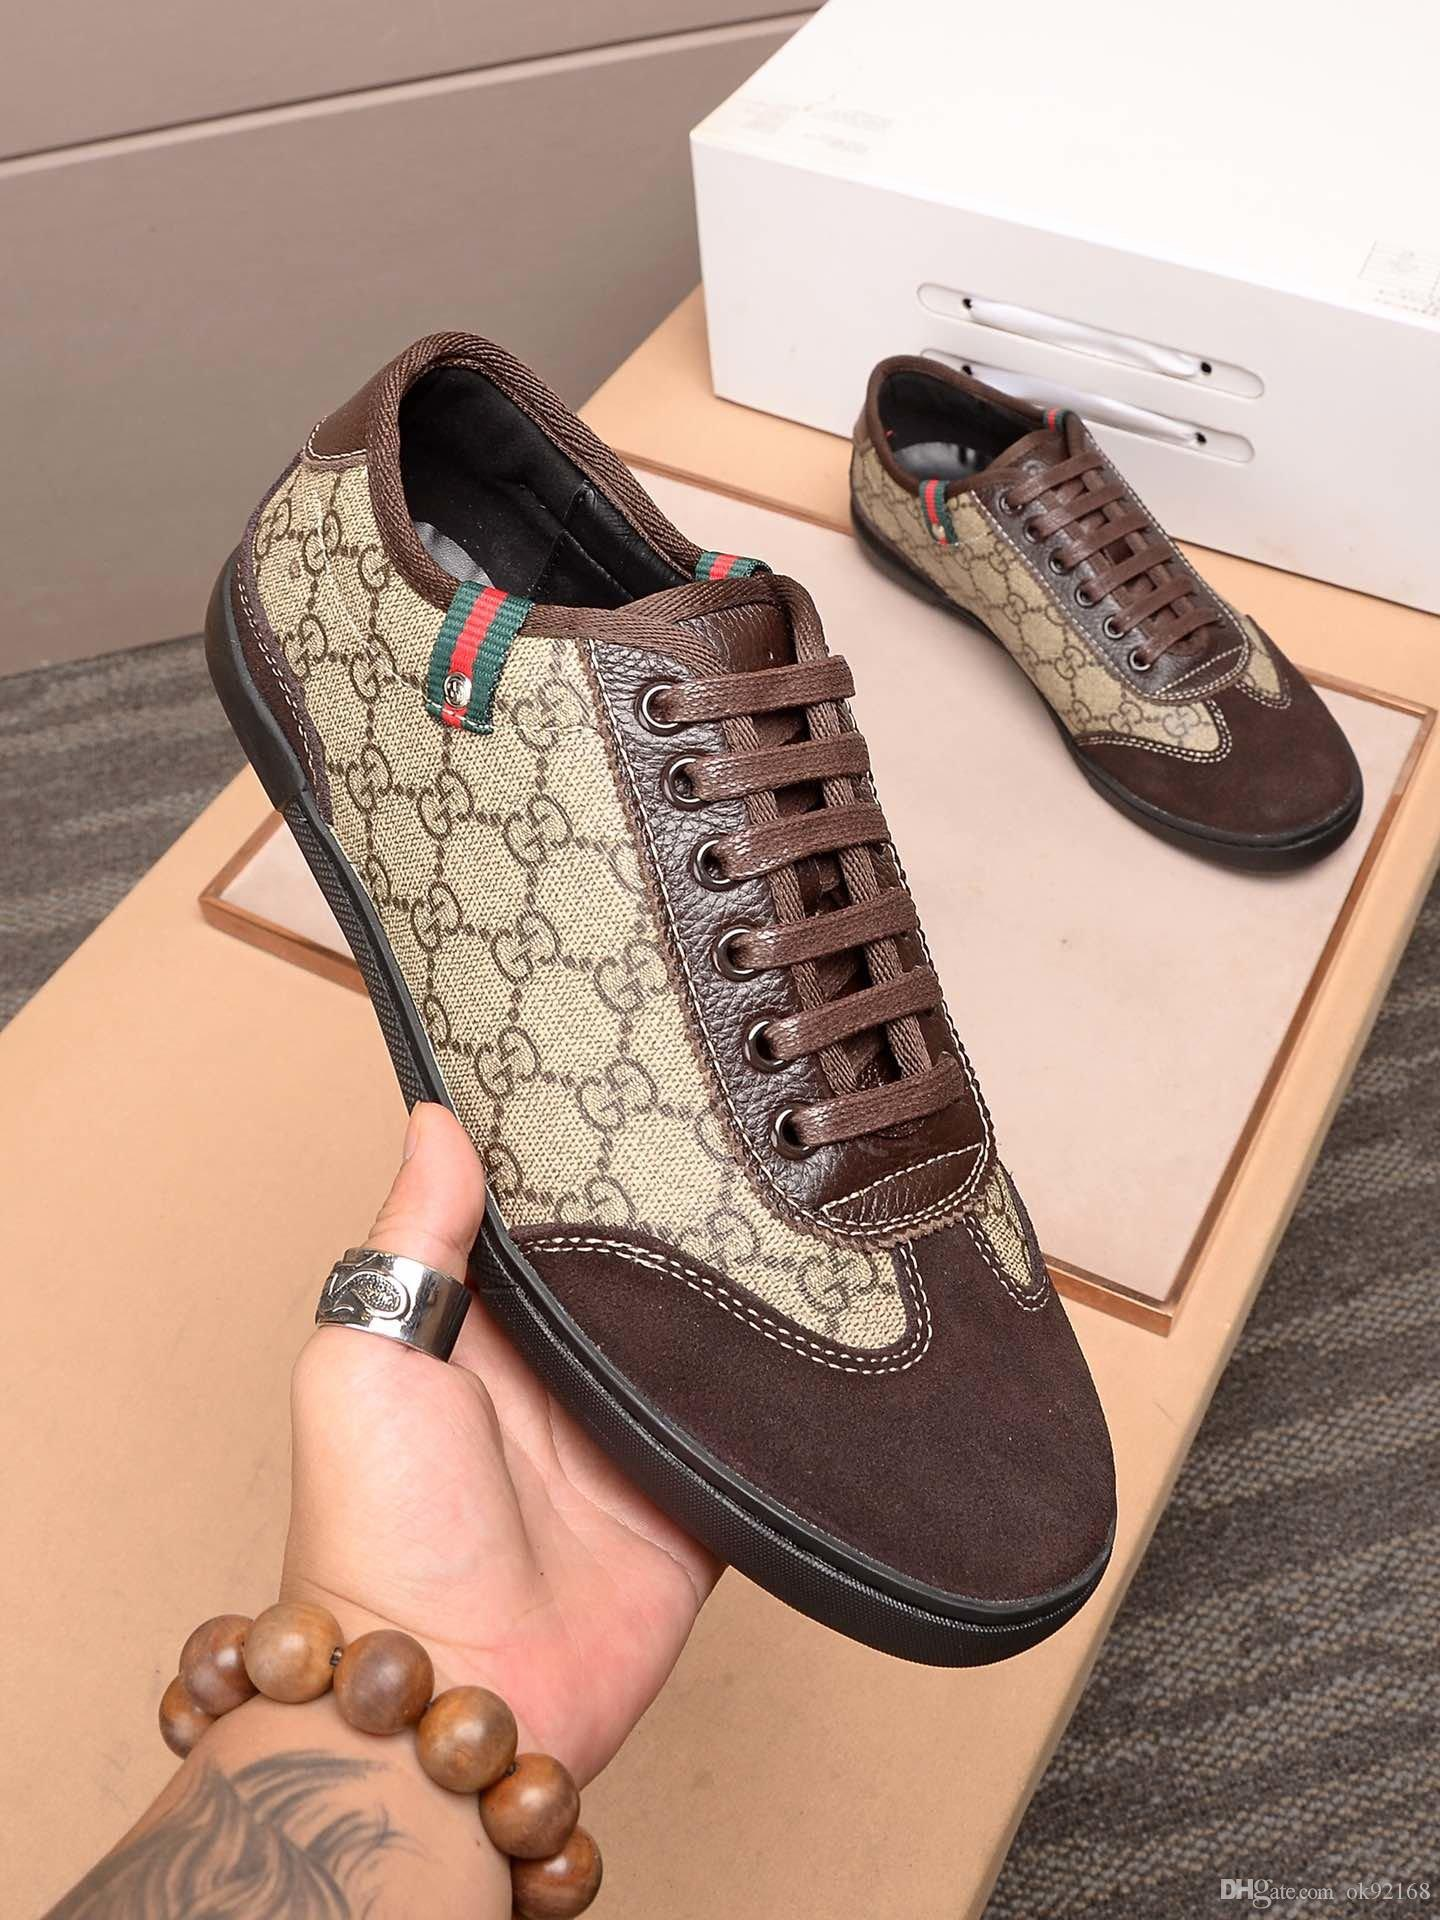 2020 SQ new high-quality designer men's high-end luxury comfortable comfortable casual leather sneakers